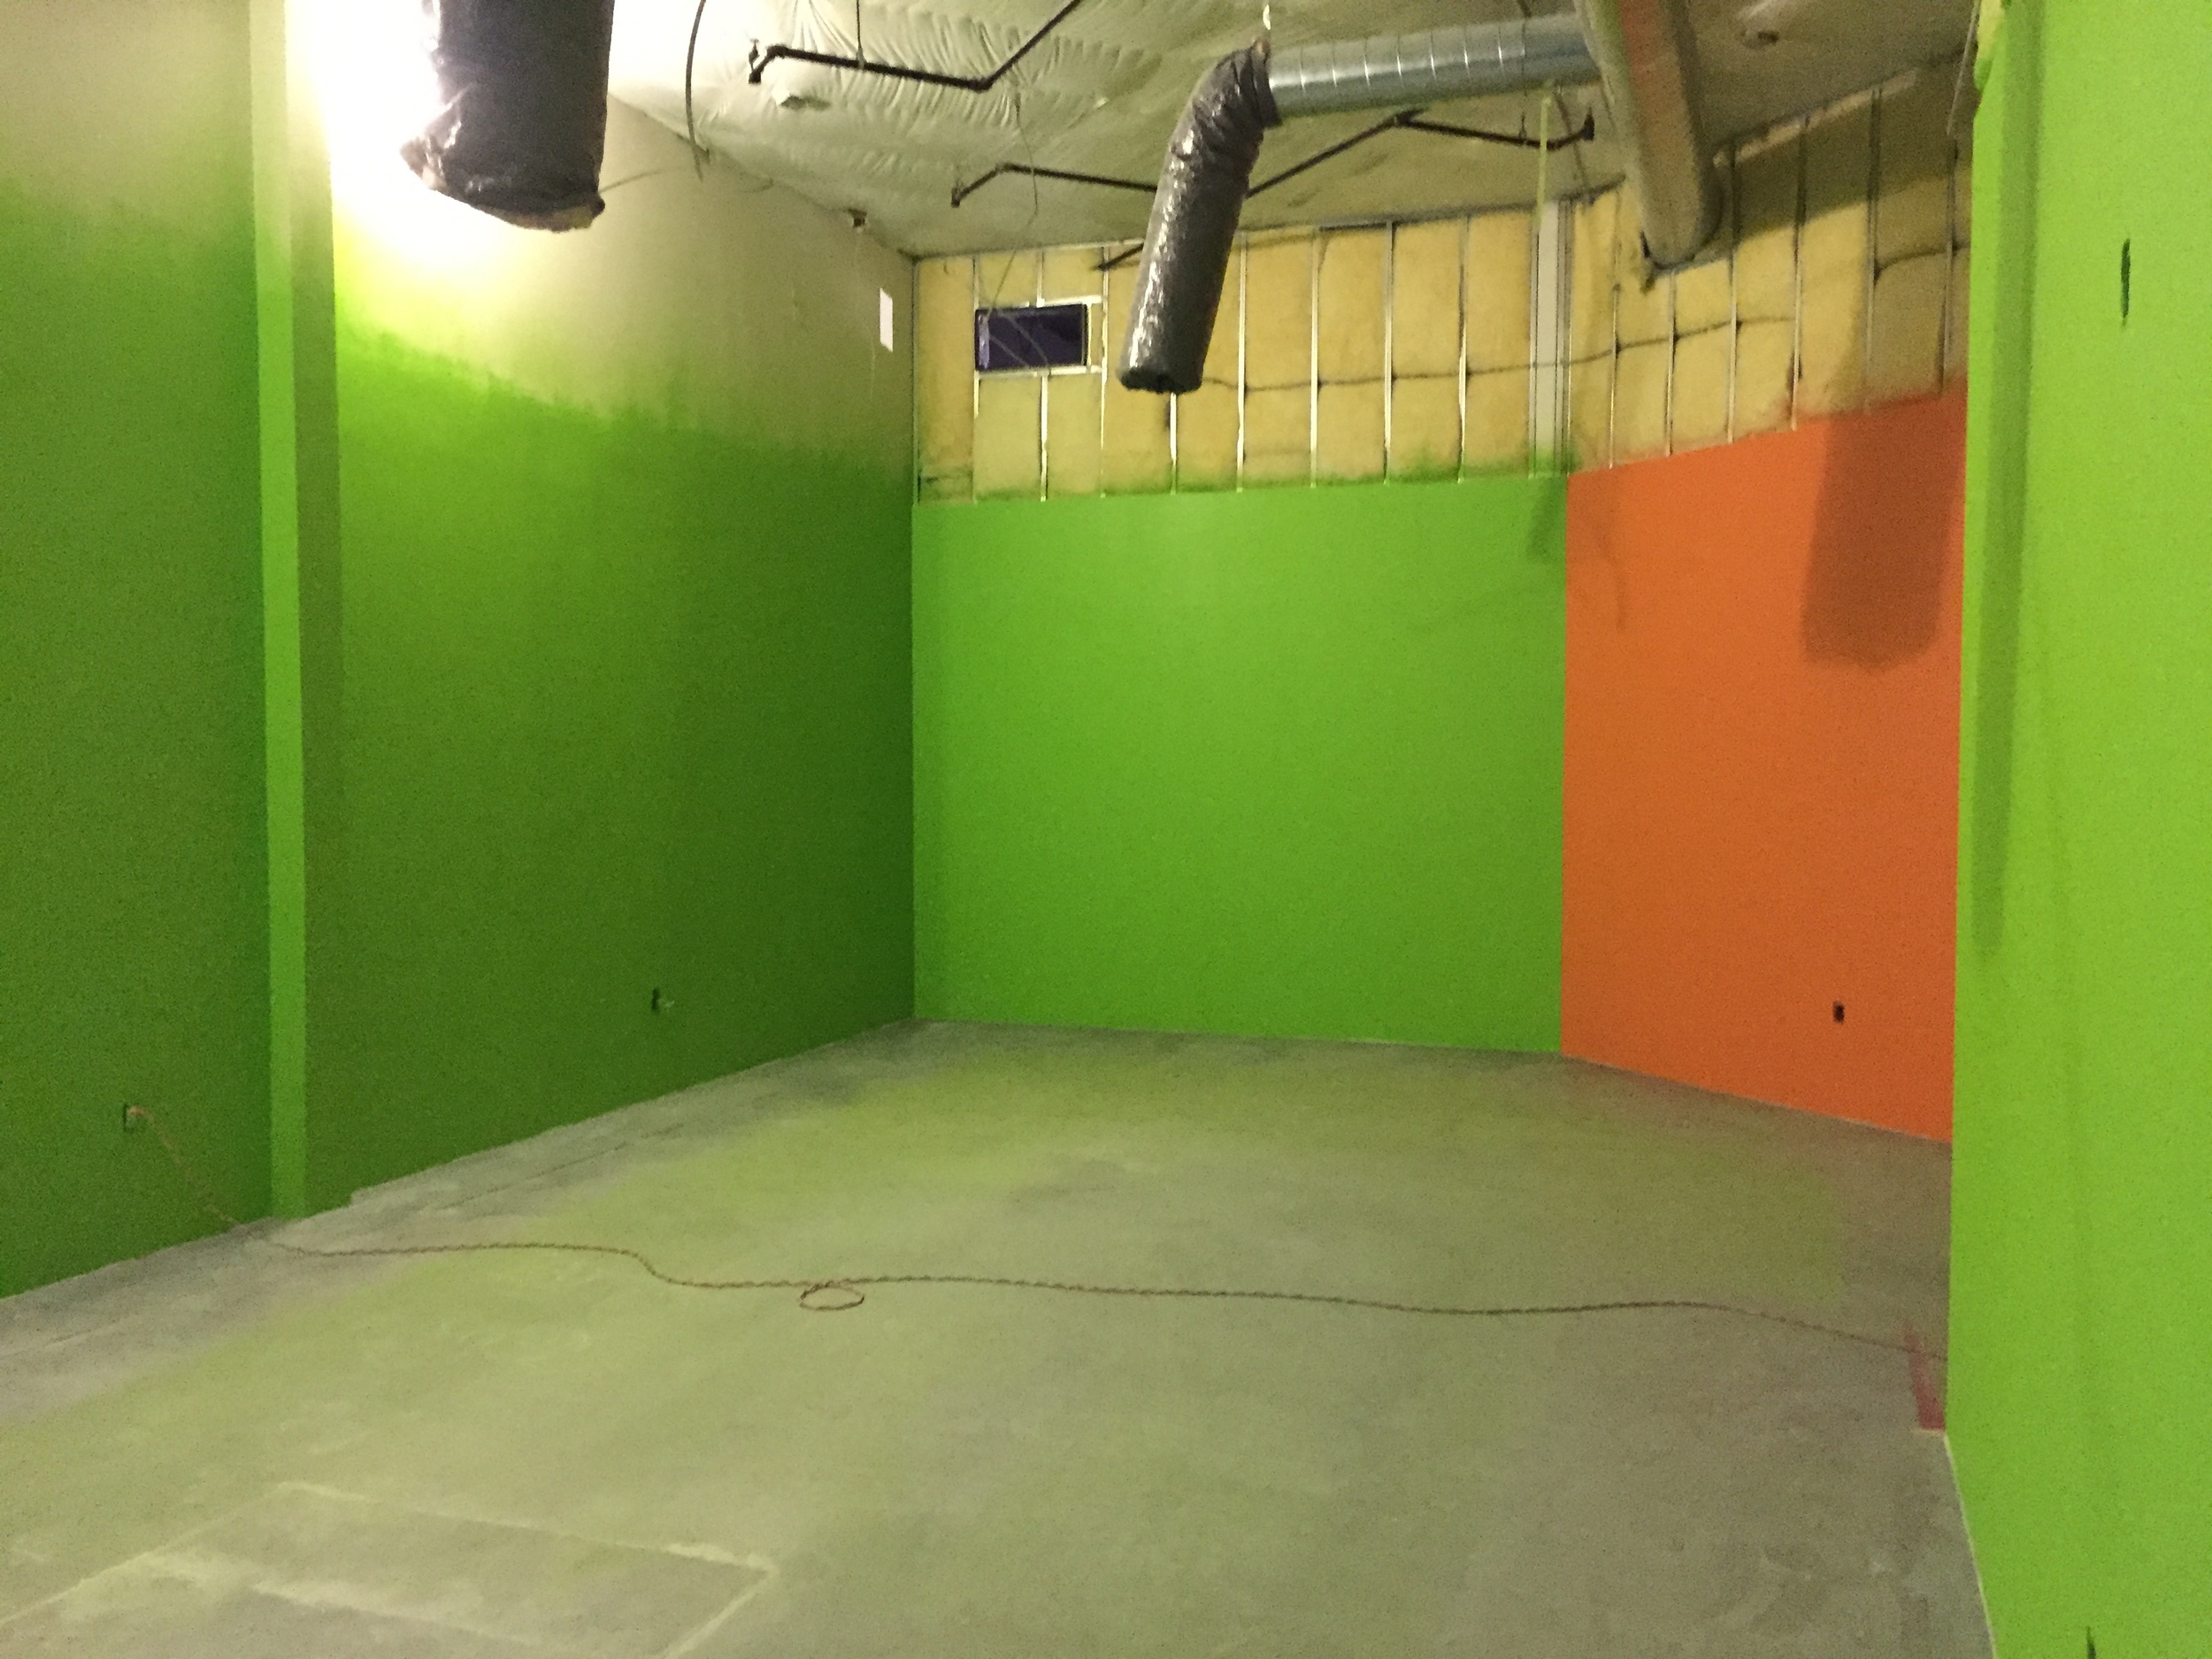 Kids' City worship area. Electric! Murals will go up this weekend!